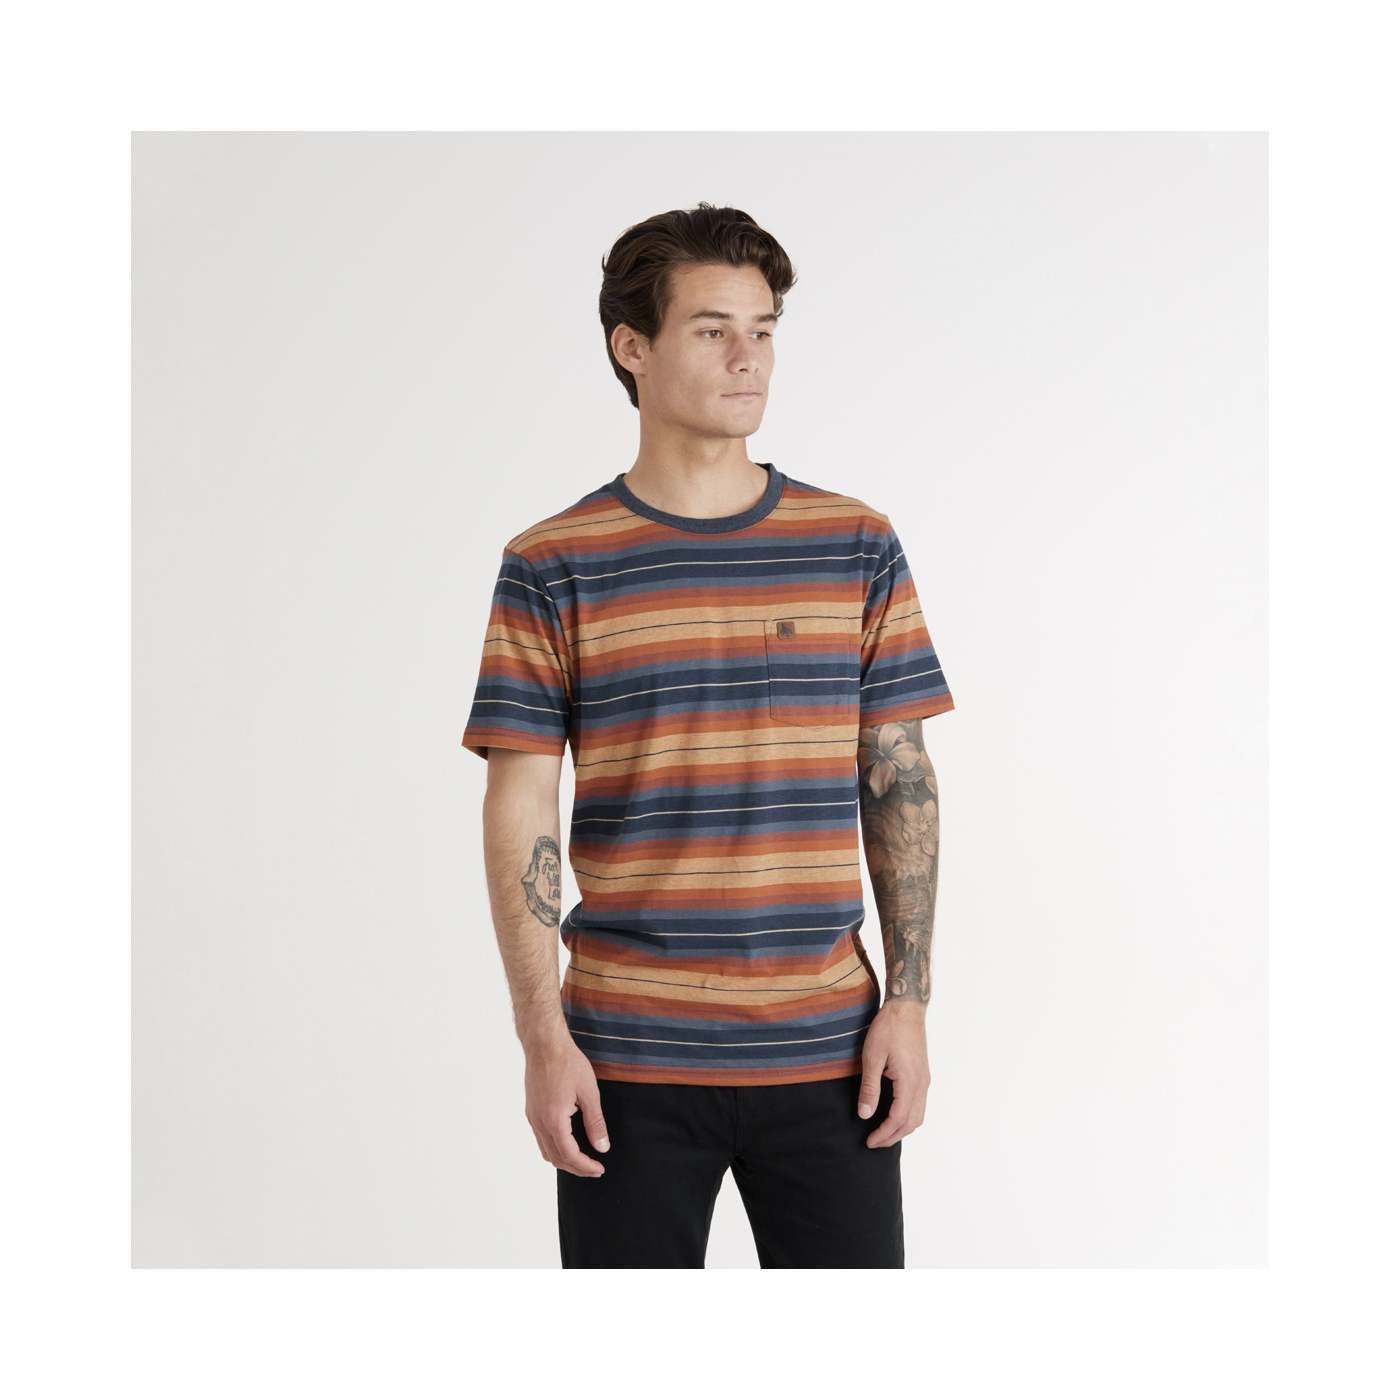 Cold Creek Knit Tee